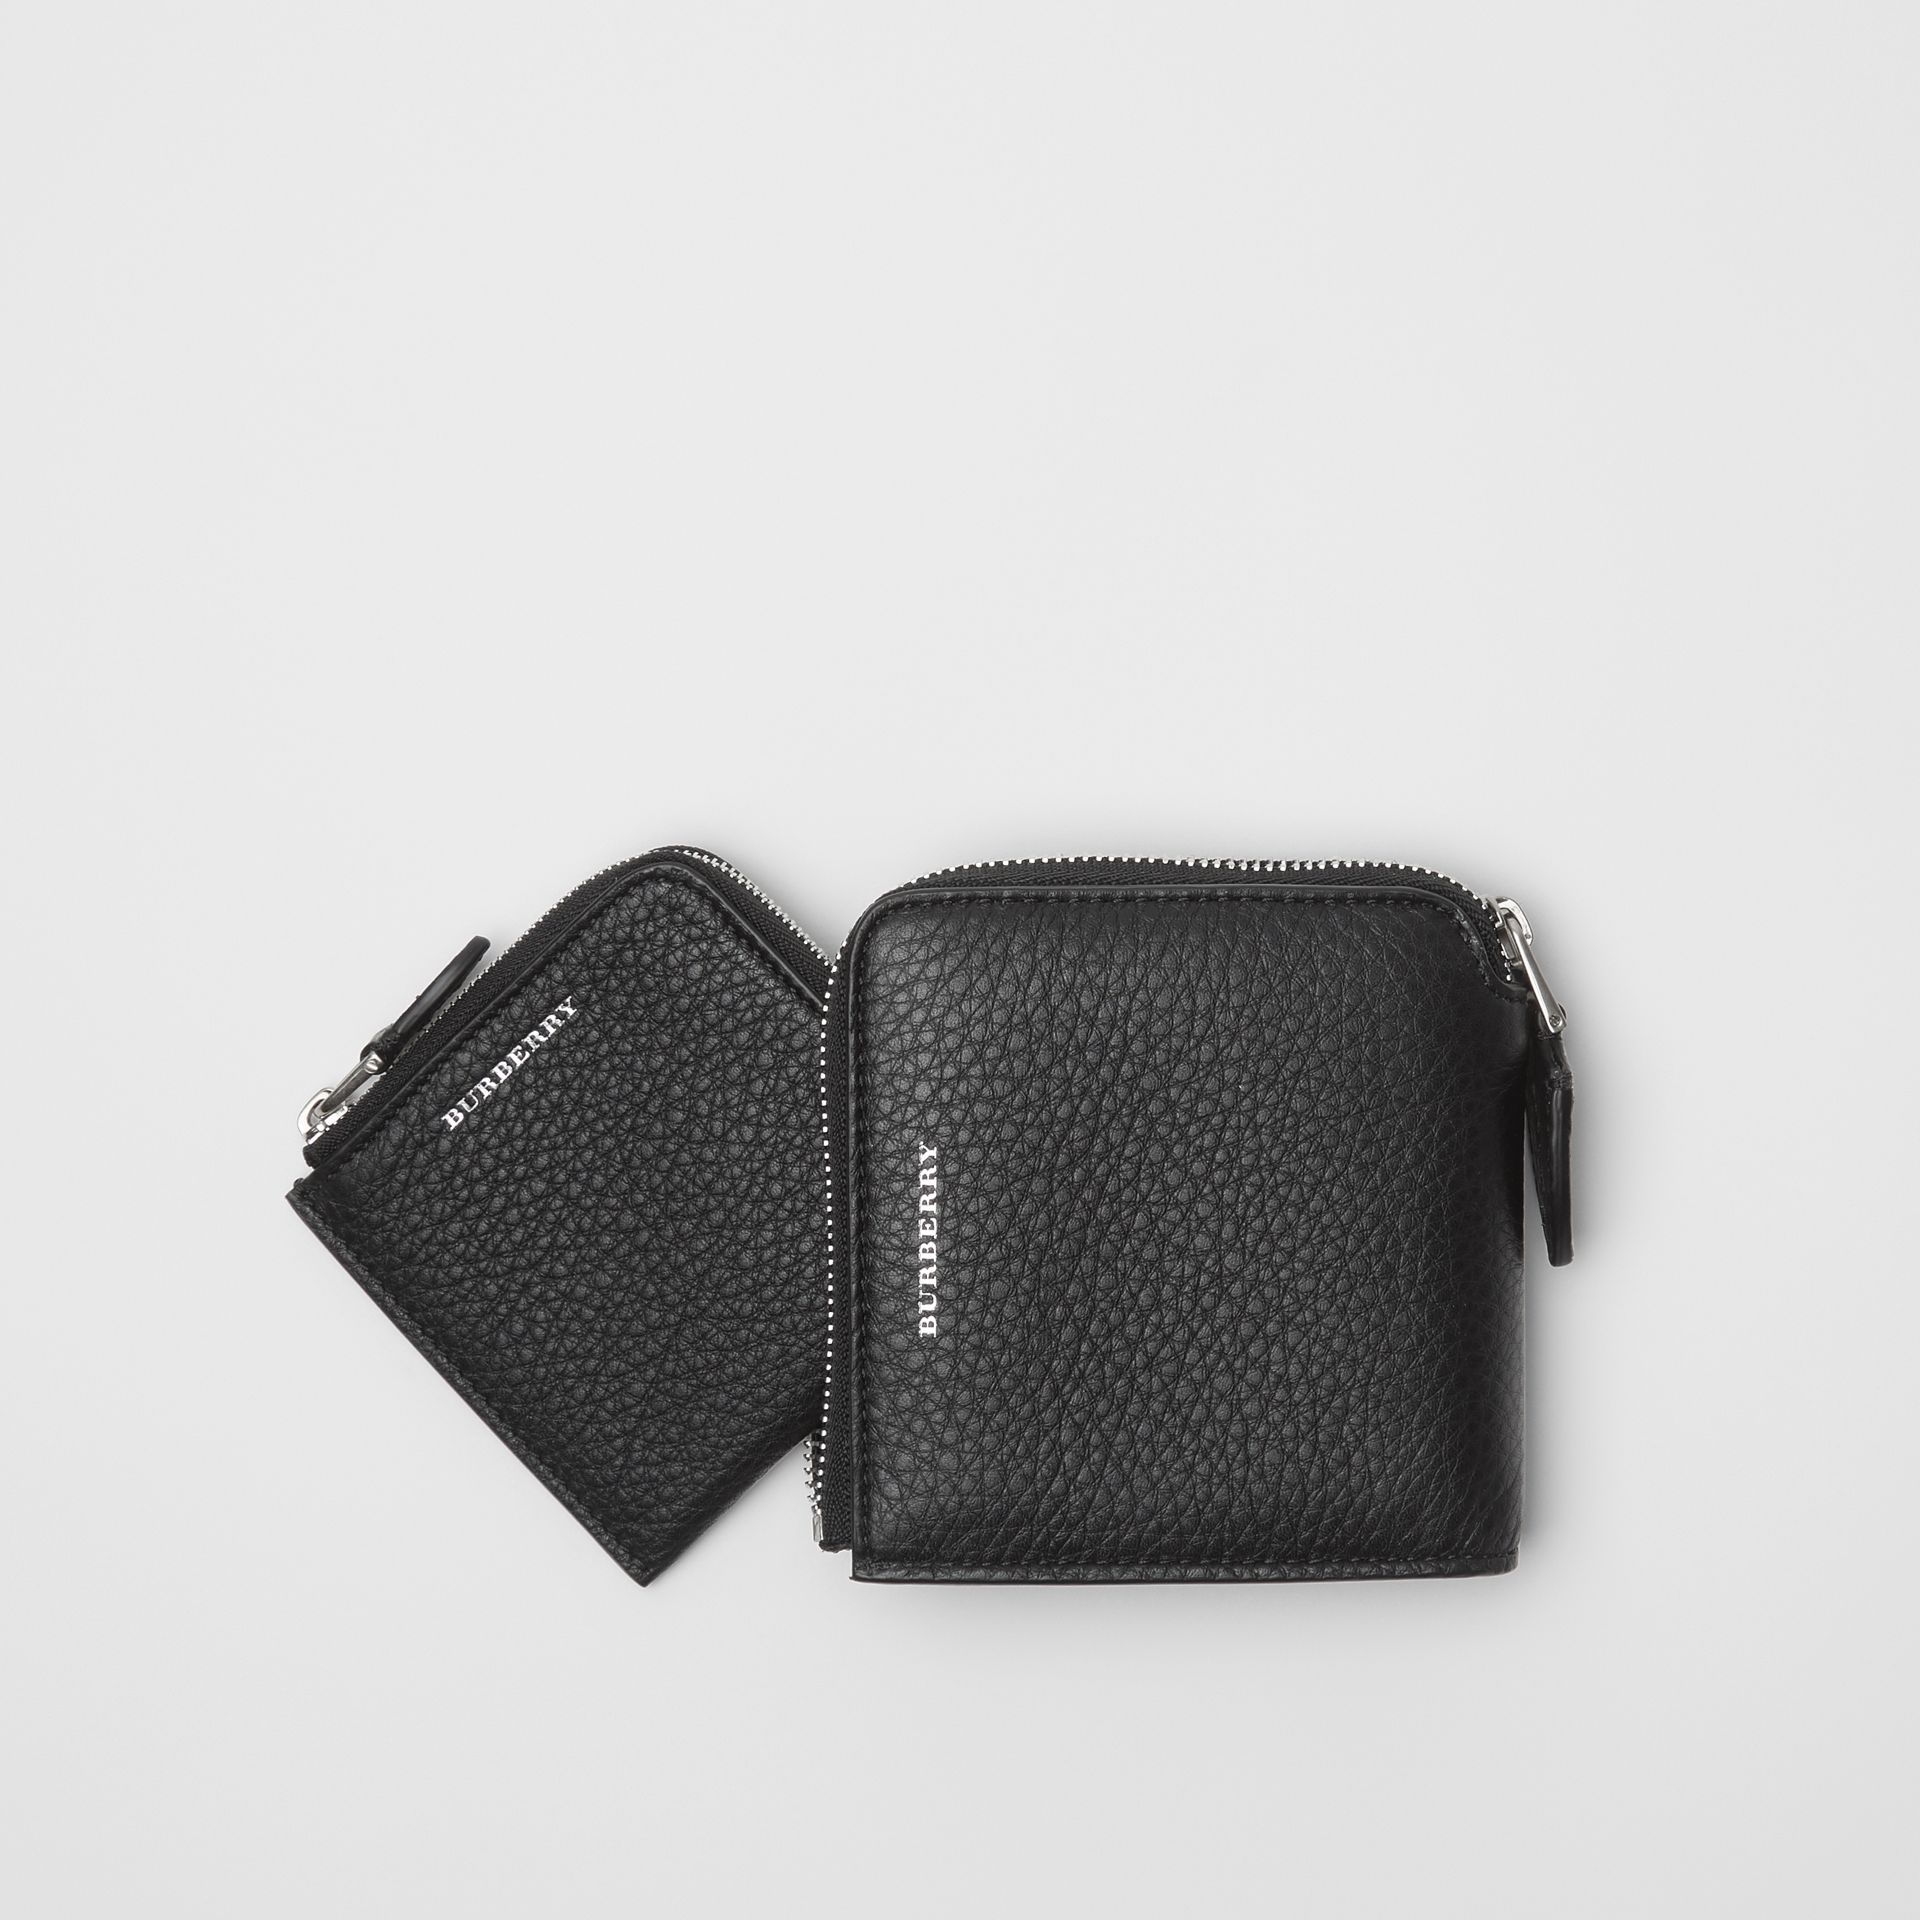 Grainy Leather Square Ziparound Wallet in Black - Women | Burberry United States - gallery image 2